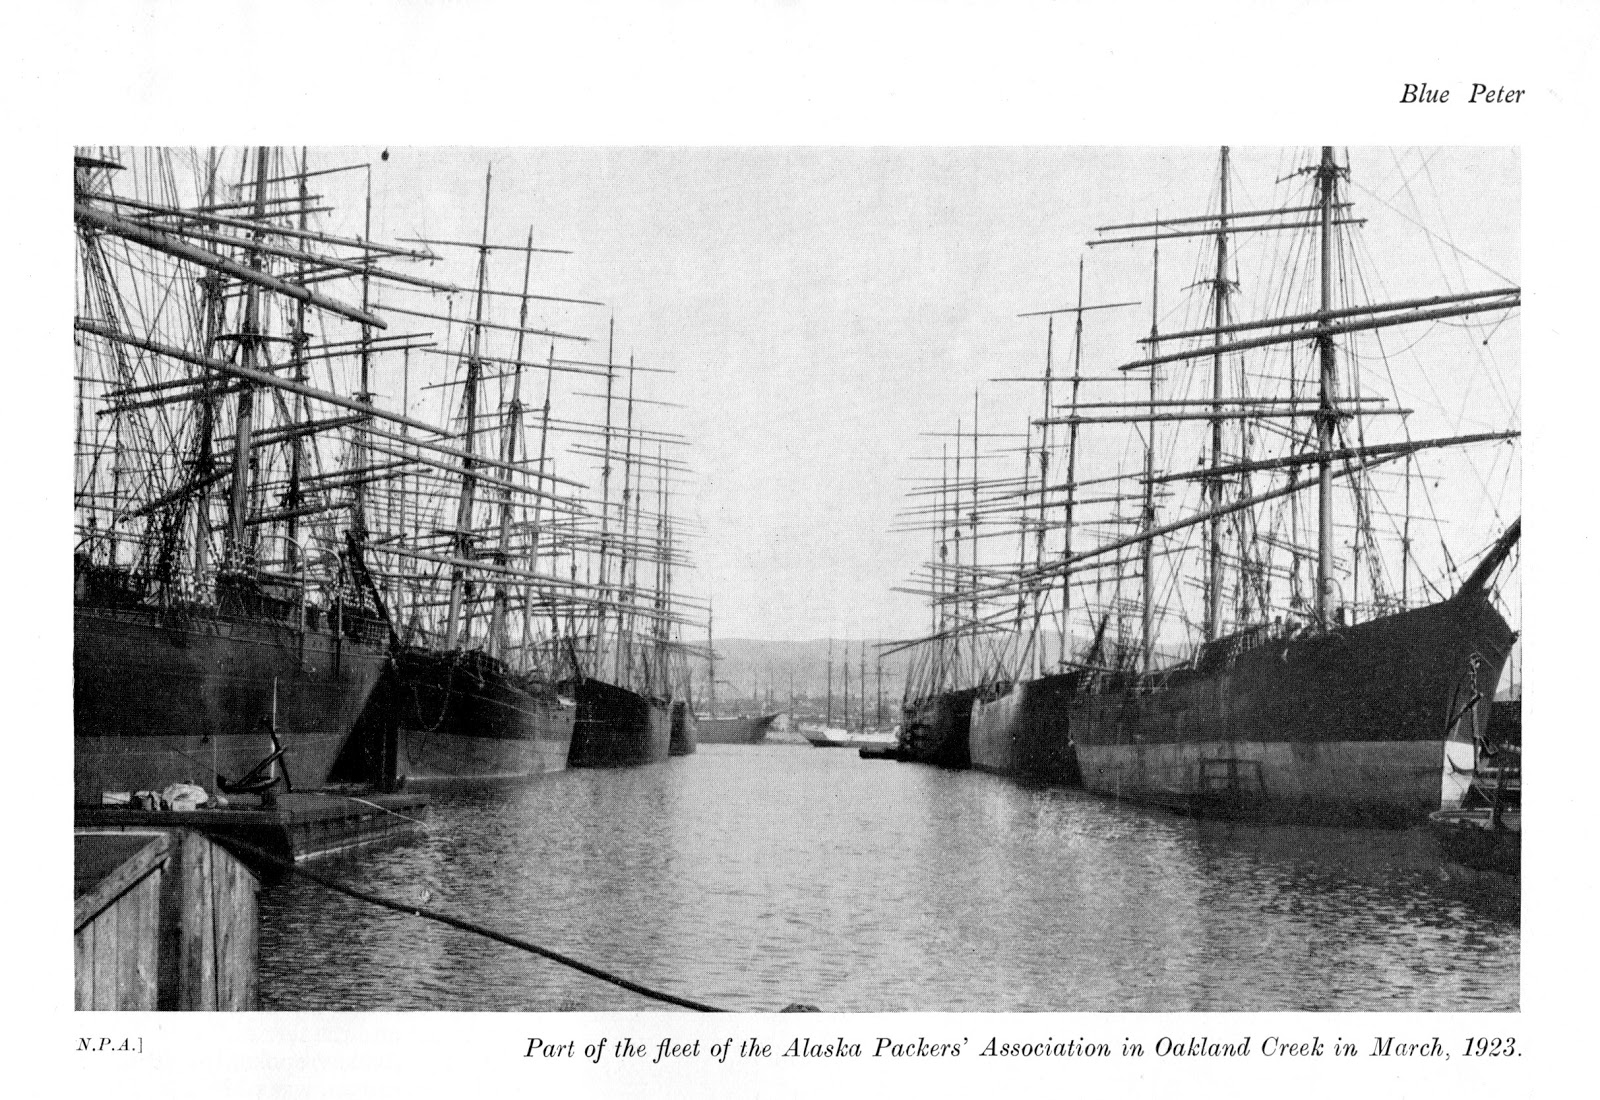 Part of the fleet of the Alaska Packers' Association in Oakland Creed in March, 1923